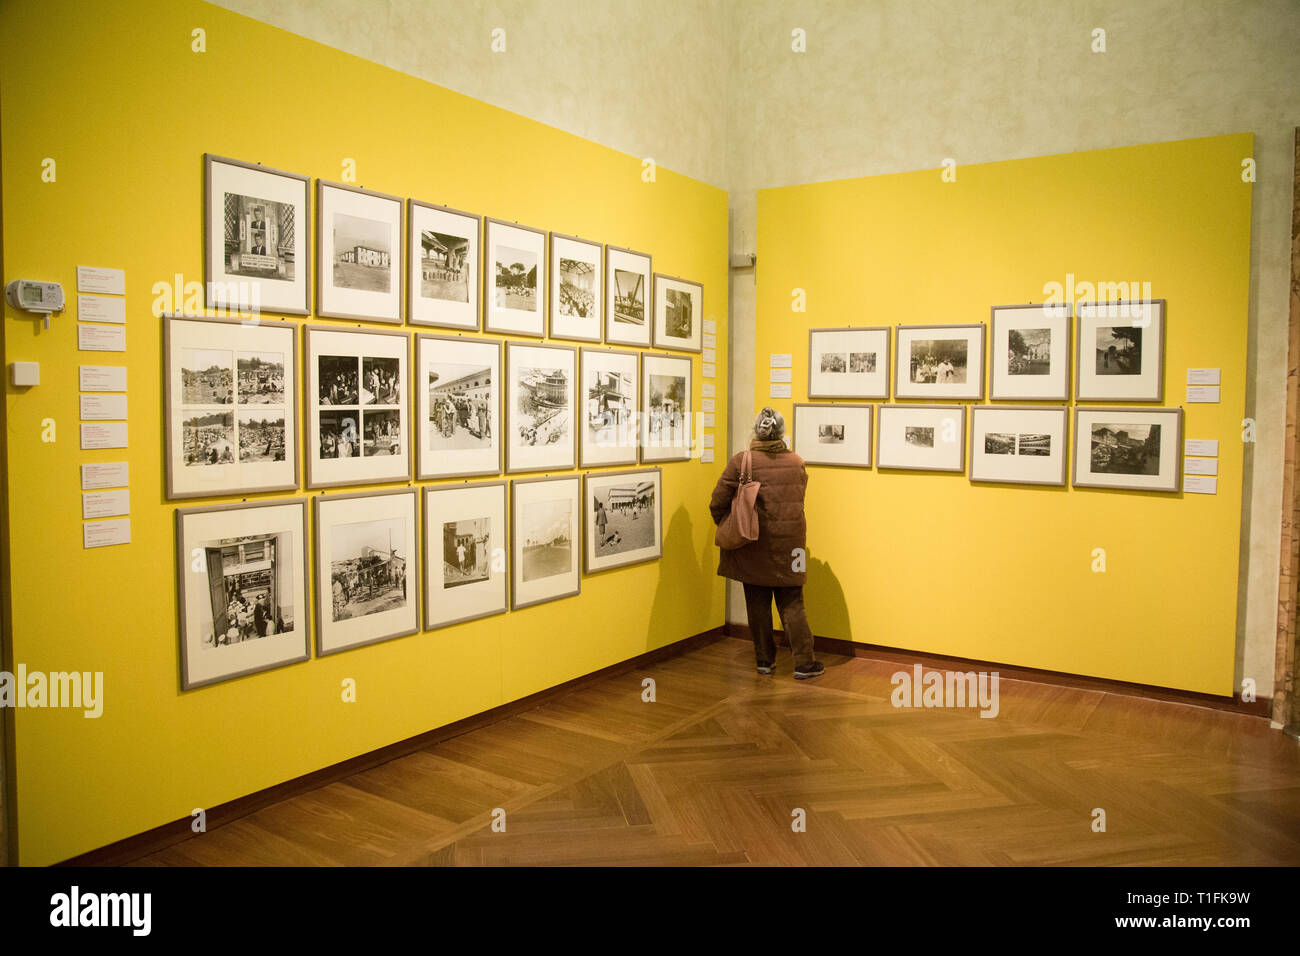 On the occasion of the 180th anniversary of the birth of photography, an extraordinary selection of images from the Photographic Archive in the exhibition 'Rome in the dark room. Photographs of the city from the nineteenth century to the present' (Photo by Matteo Nardone/Pacific Press) - Stock Image